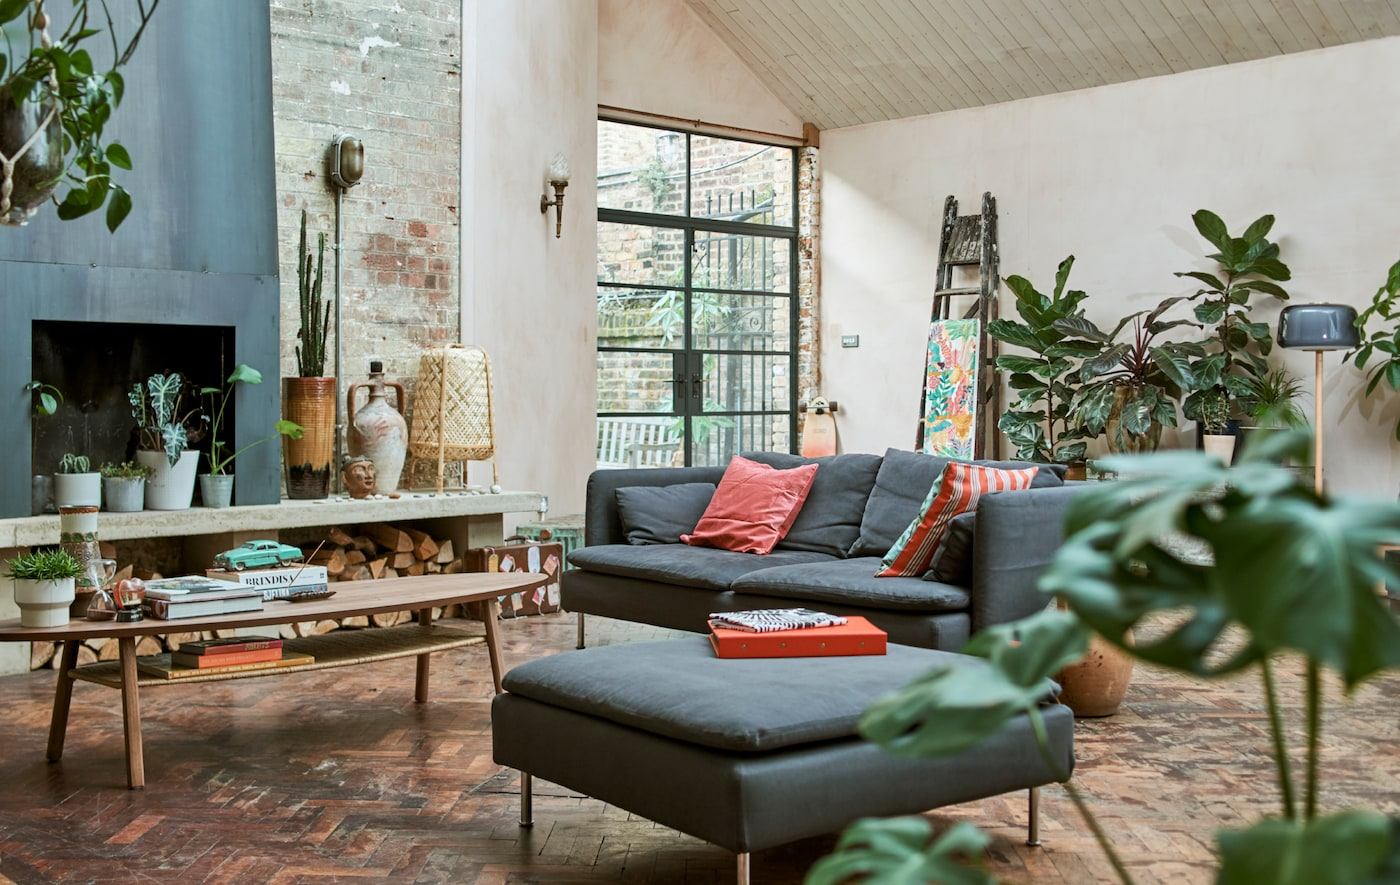 A warehouse-style living room with brick walls, fireplace, parquet floor, blue sofa and footstool, coffee table and plants.